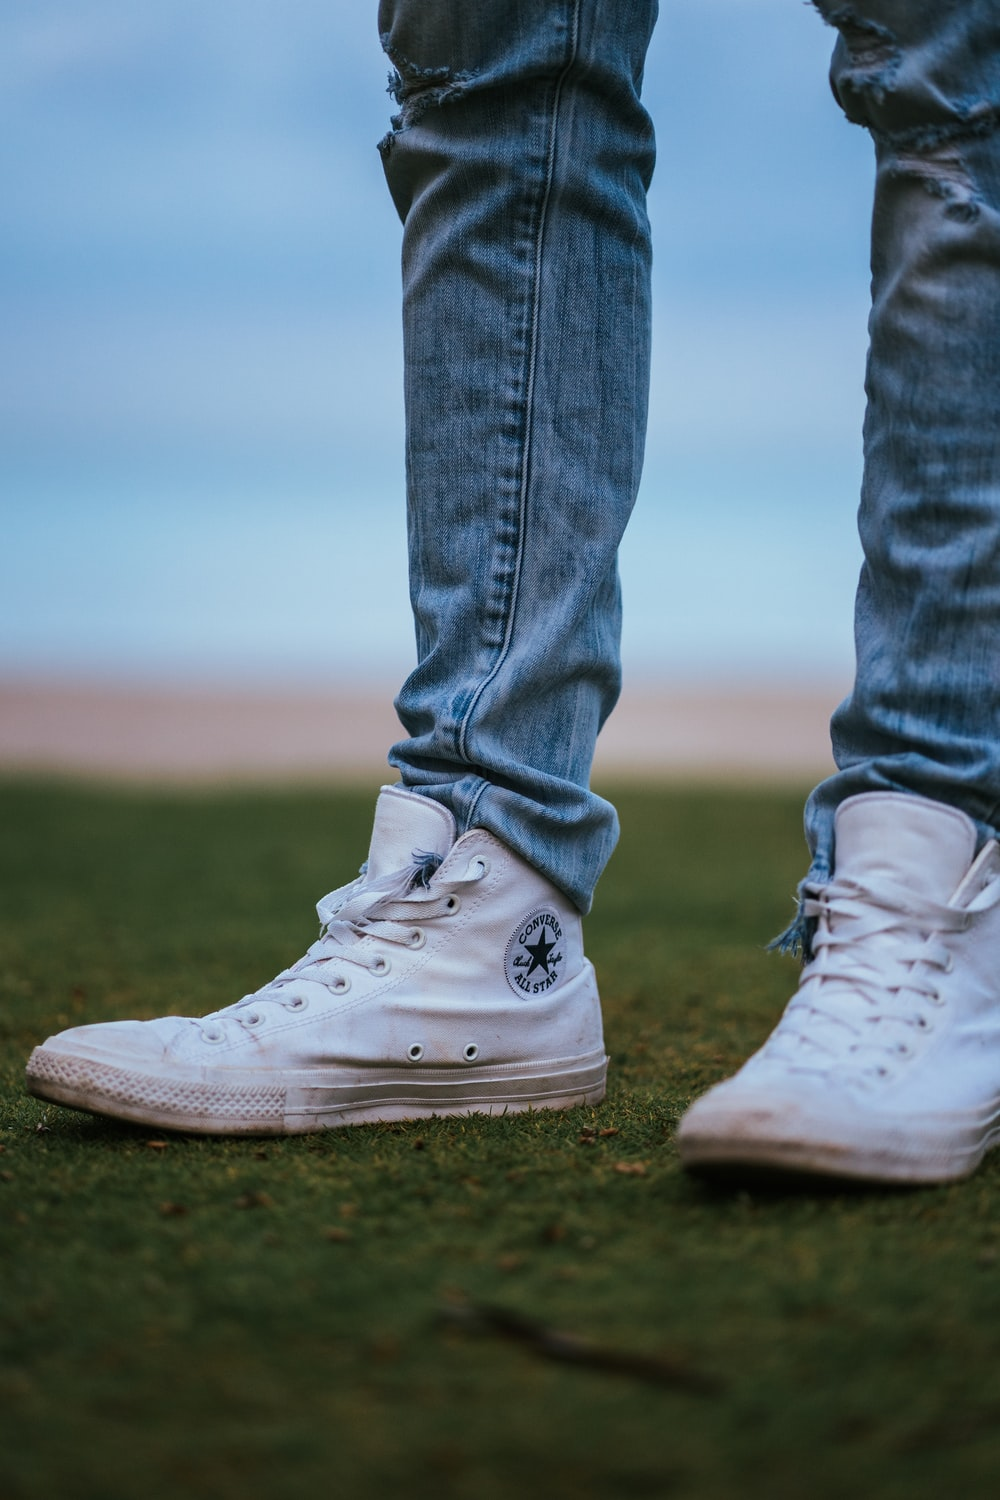 man wearing white Converse high-tops shoes